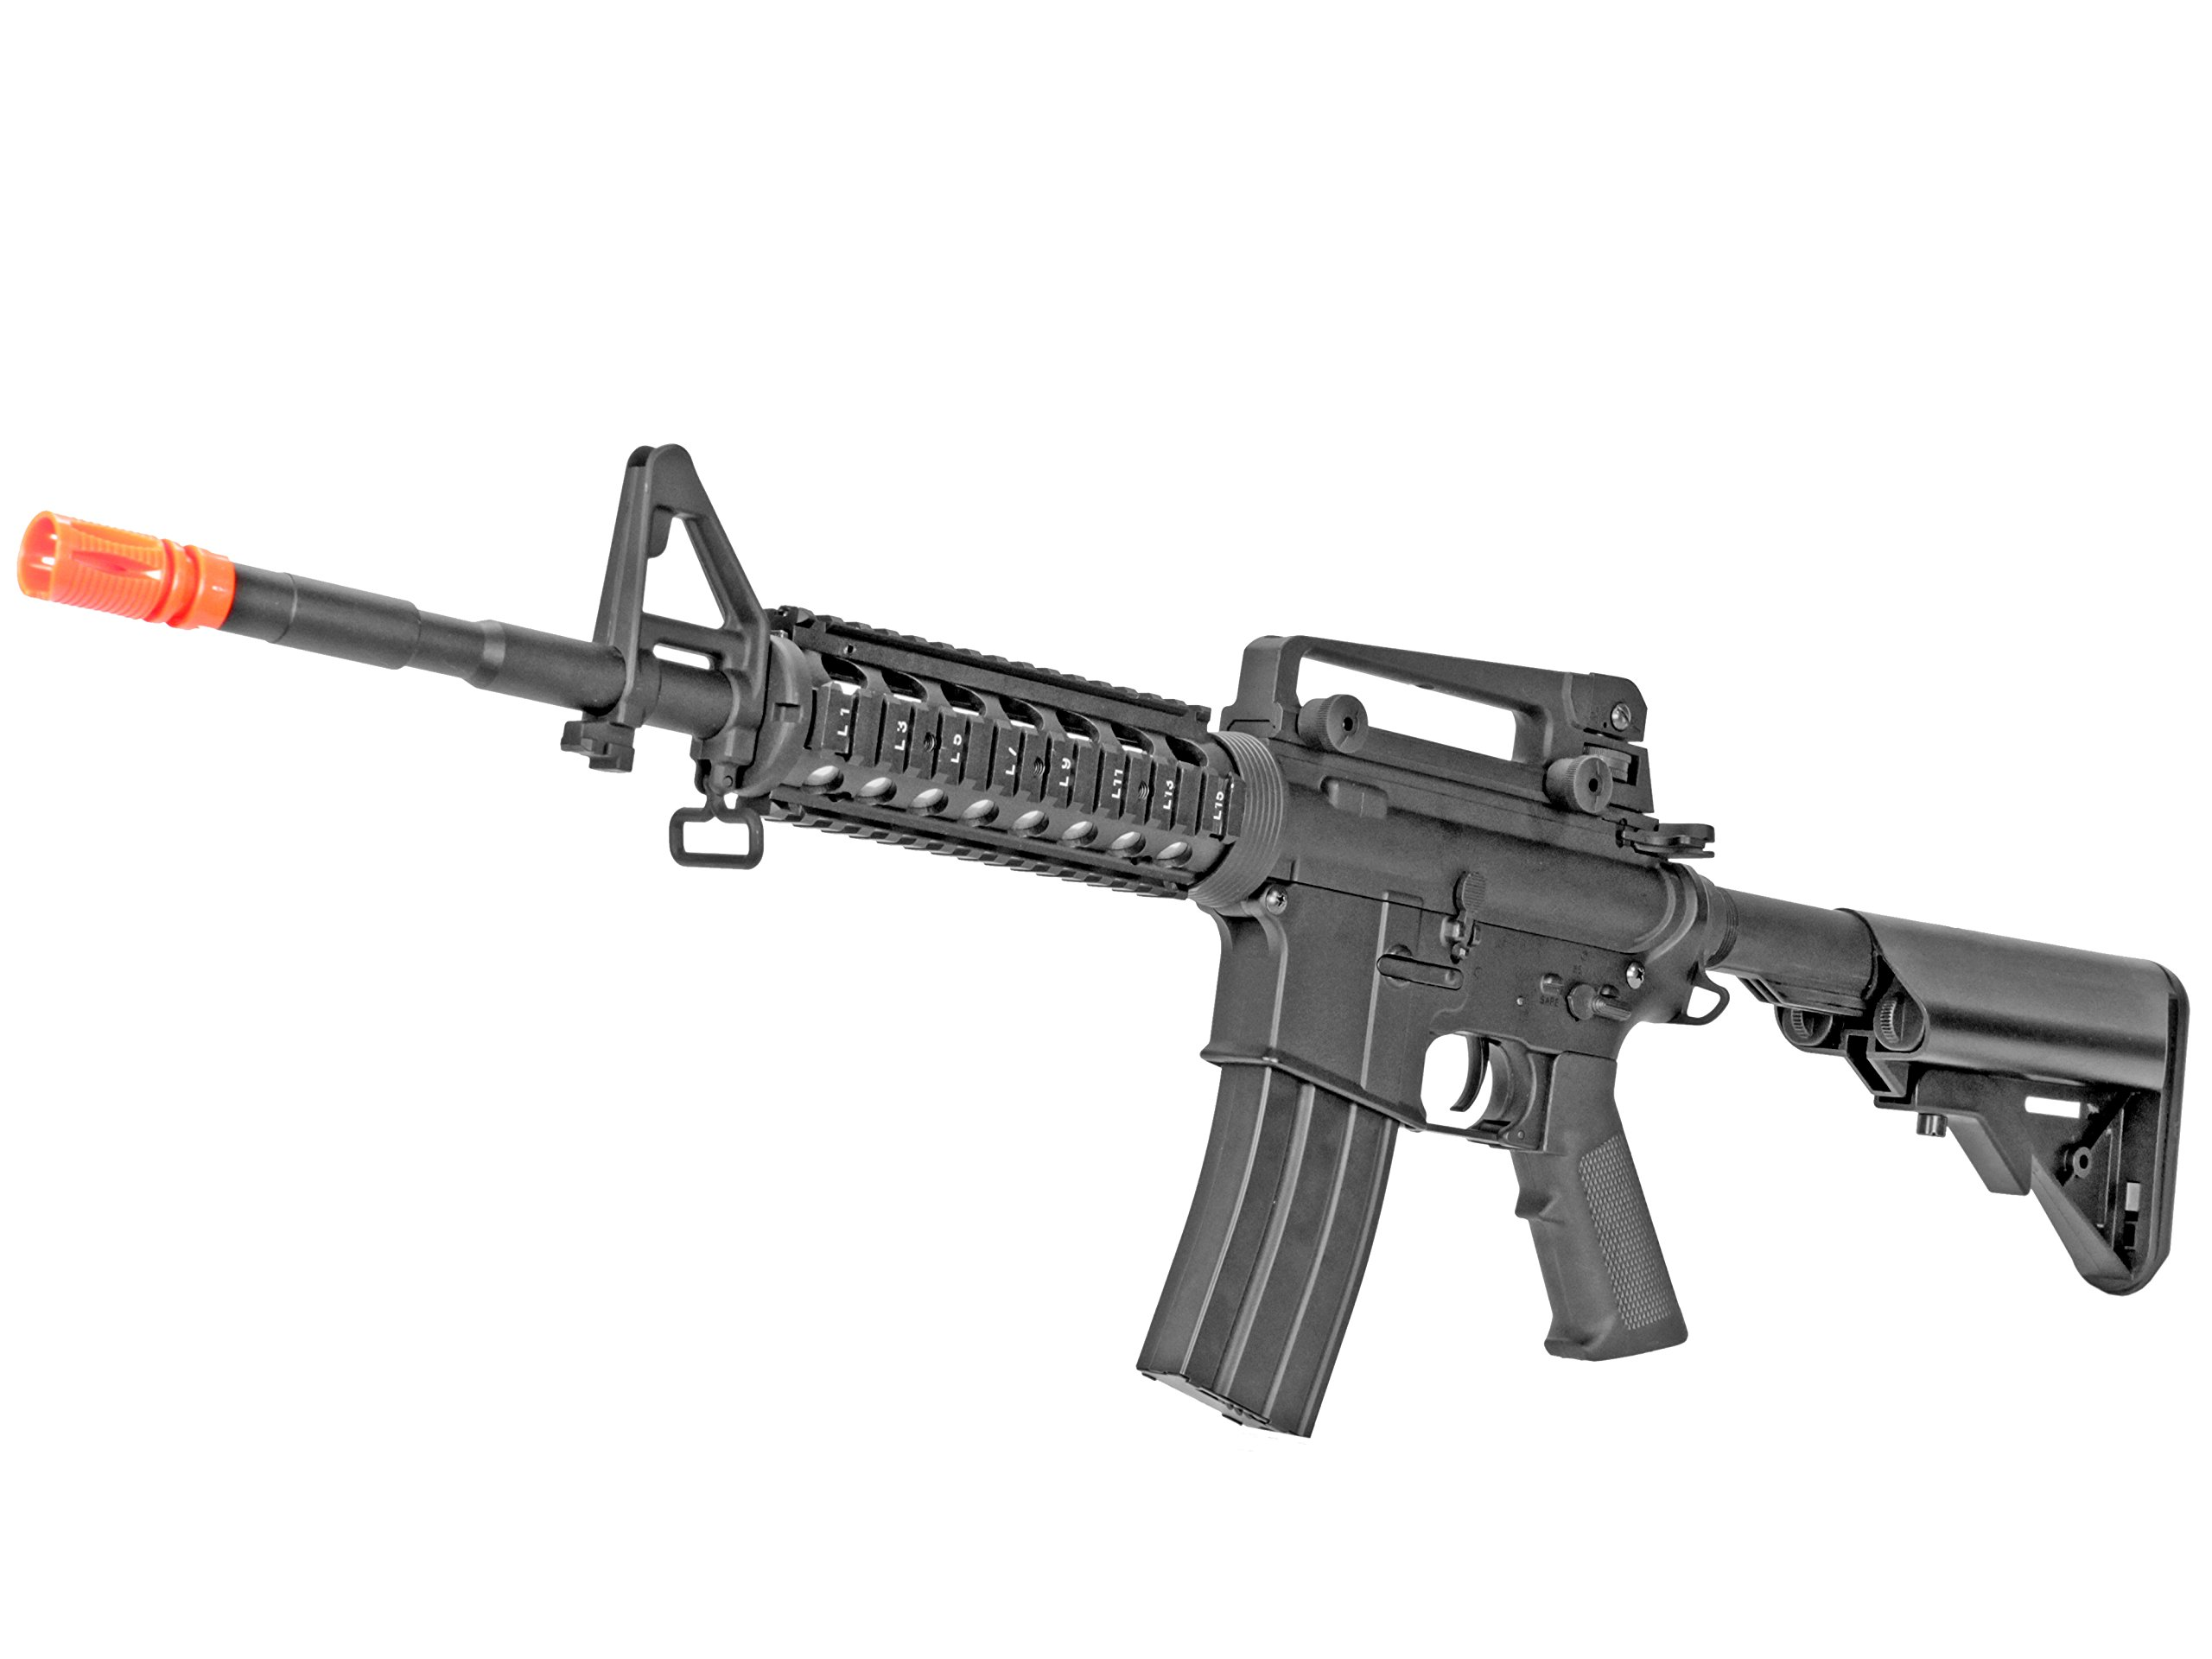 MetalTac CYMA CM013 M4-RAS Electric Airsoft Gun with Metal Gearbox Version 2, Full Auto AEG, Powerful Spring 415 Fps with .20g BBs